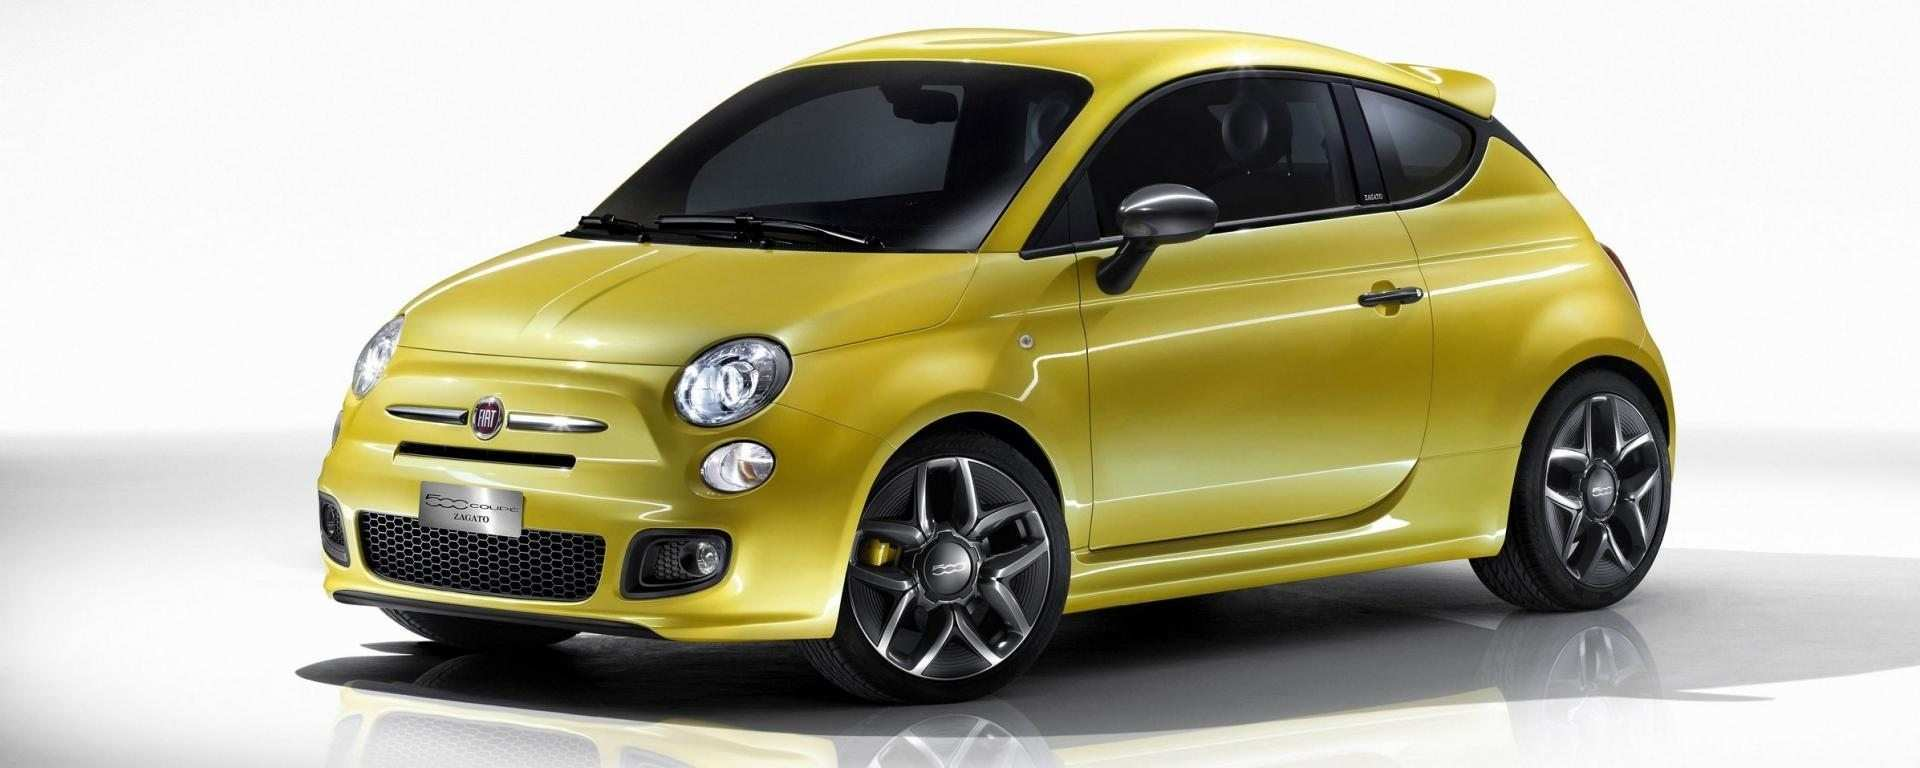 82 New 2020 Fiat 500 Exterior with 2020 Fiat 500